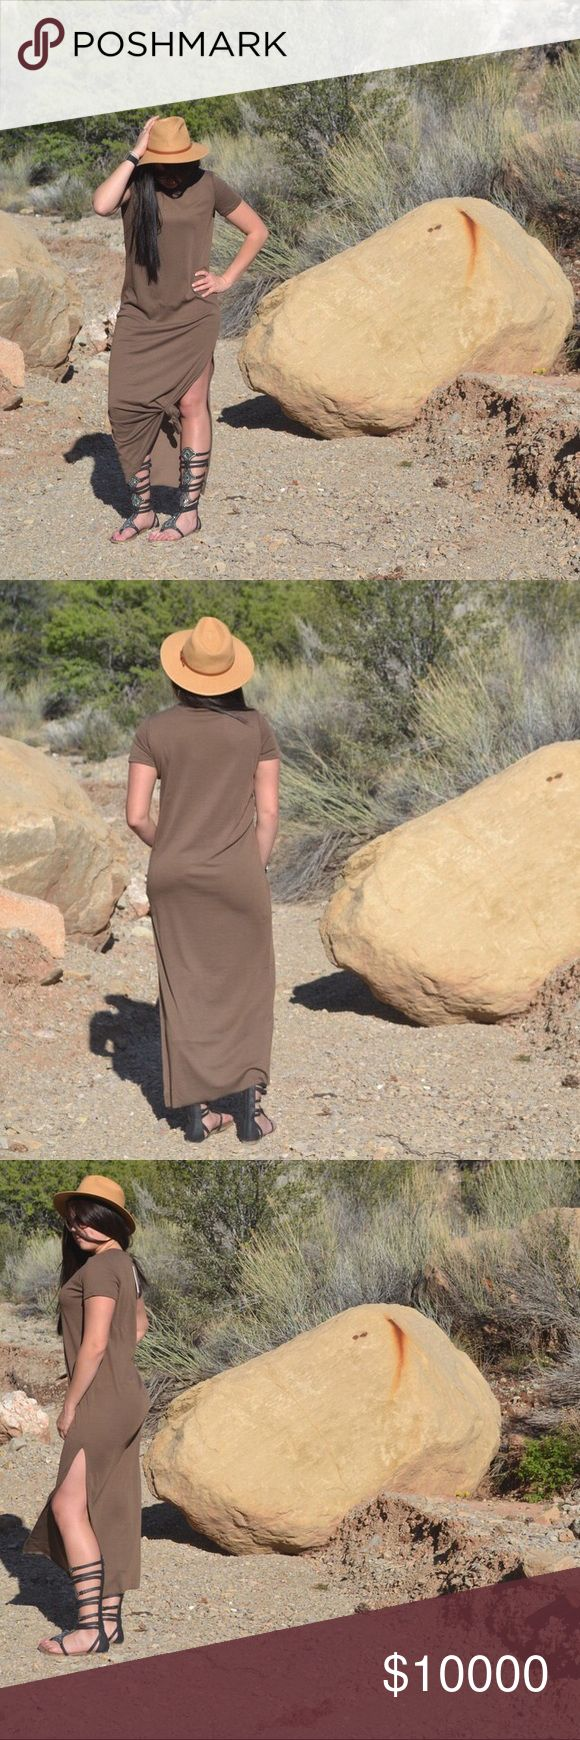 << Chic Boho Chocolate Brown Maxi Dress >> This boho chic little dress will soon be your favorite! Long length and classic fit! Loose for all day comfort! Has a slit on one side for a little peep! Let loose or tie up! Ribbed material with a thicker than jersey feel. Fits true to size. I am 6ft tall and a size 8-10 wearing the large. Other